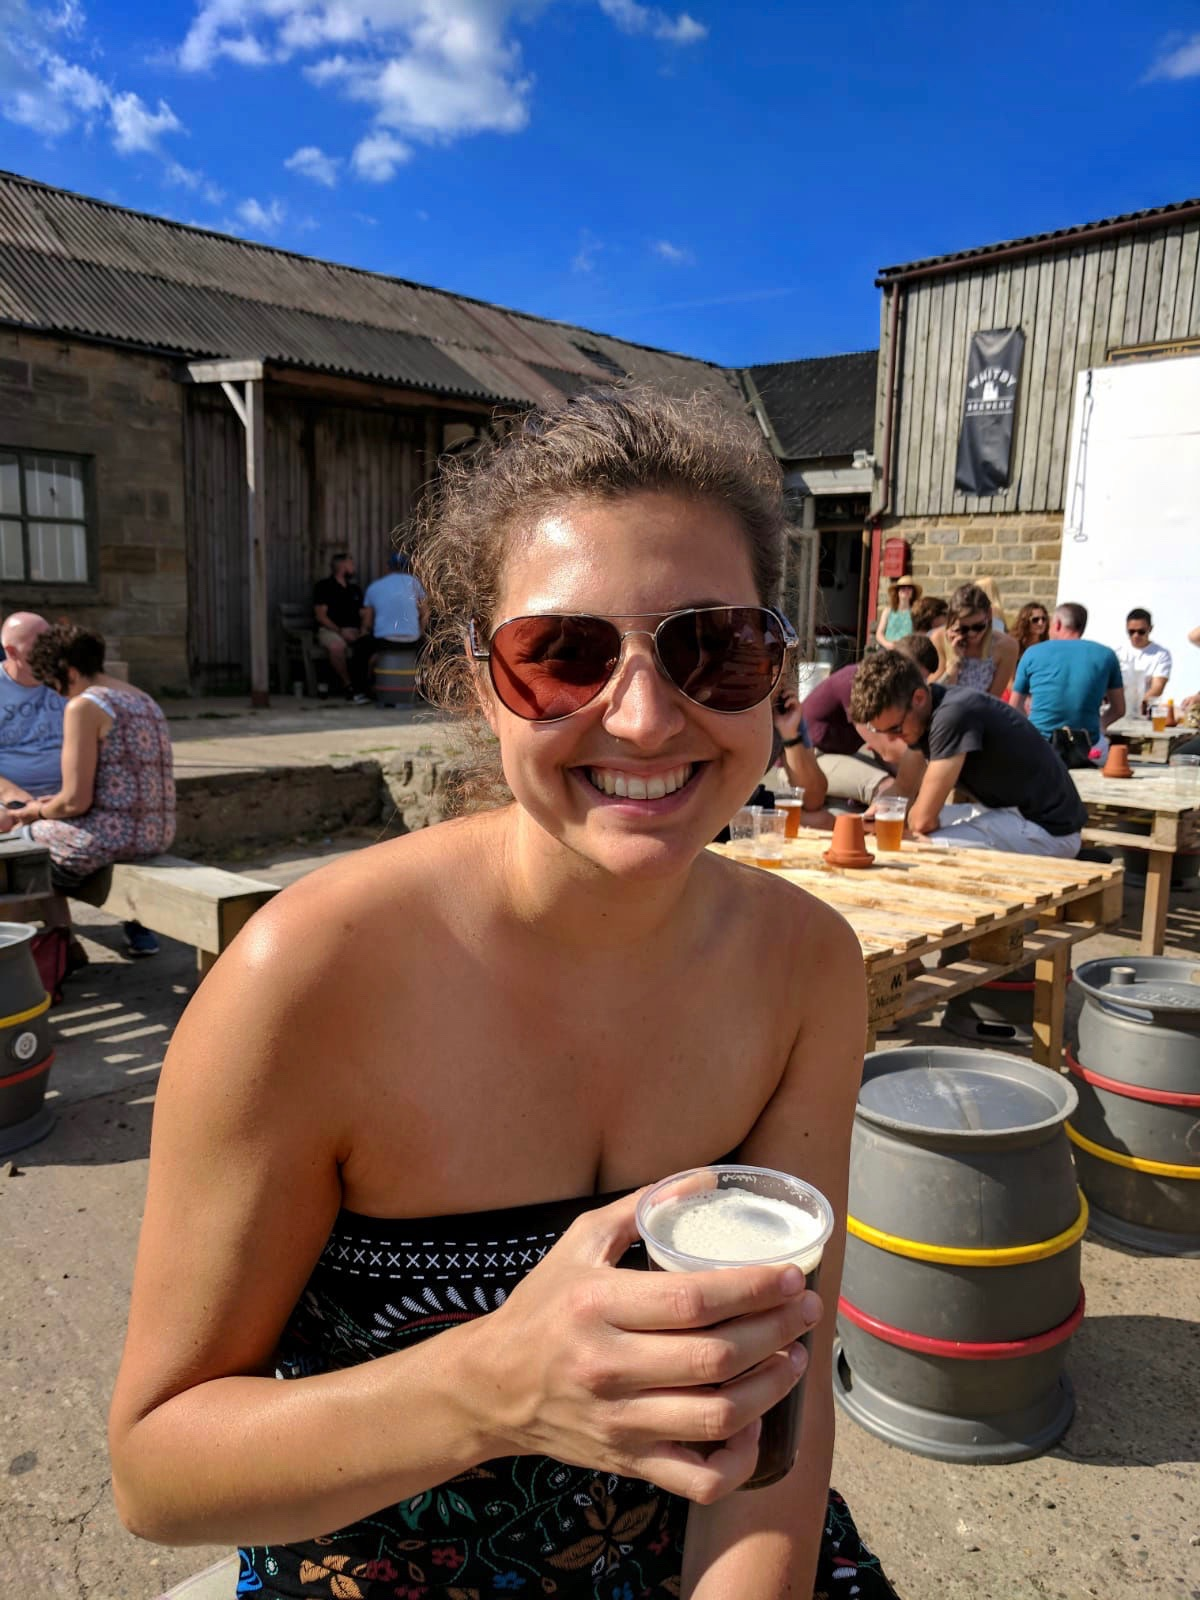 Girl sat outside Whitby Brewery with a pint of beer, wearing sunglasses and smiling at the camera.